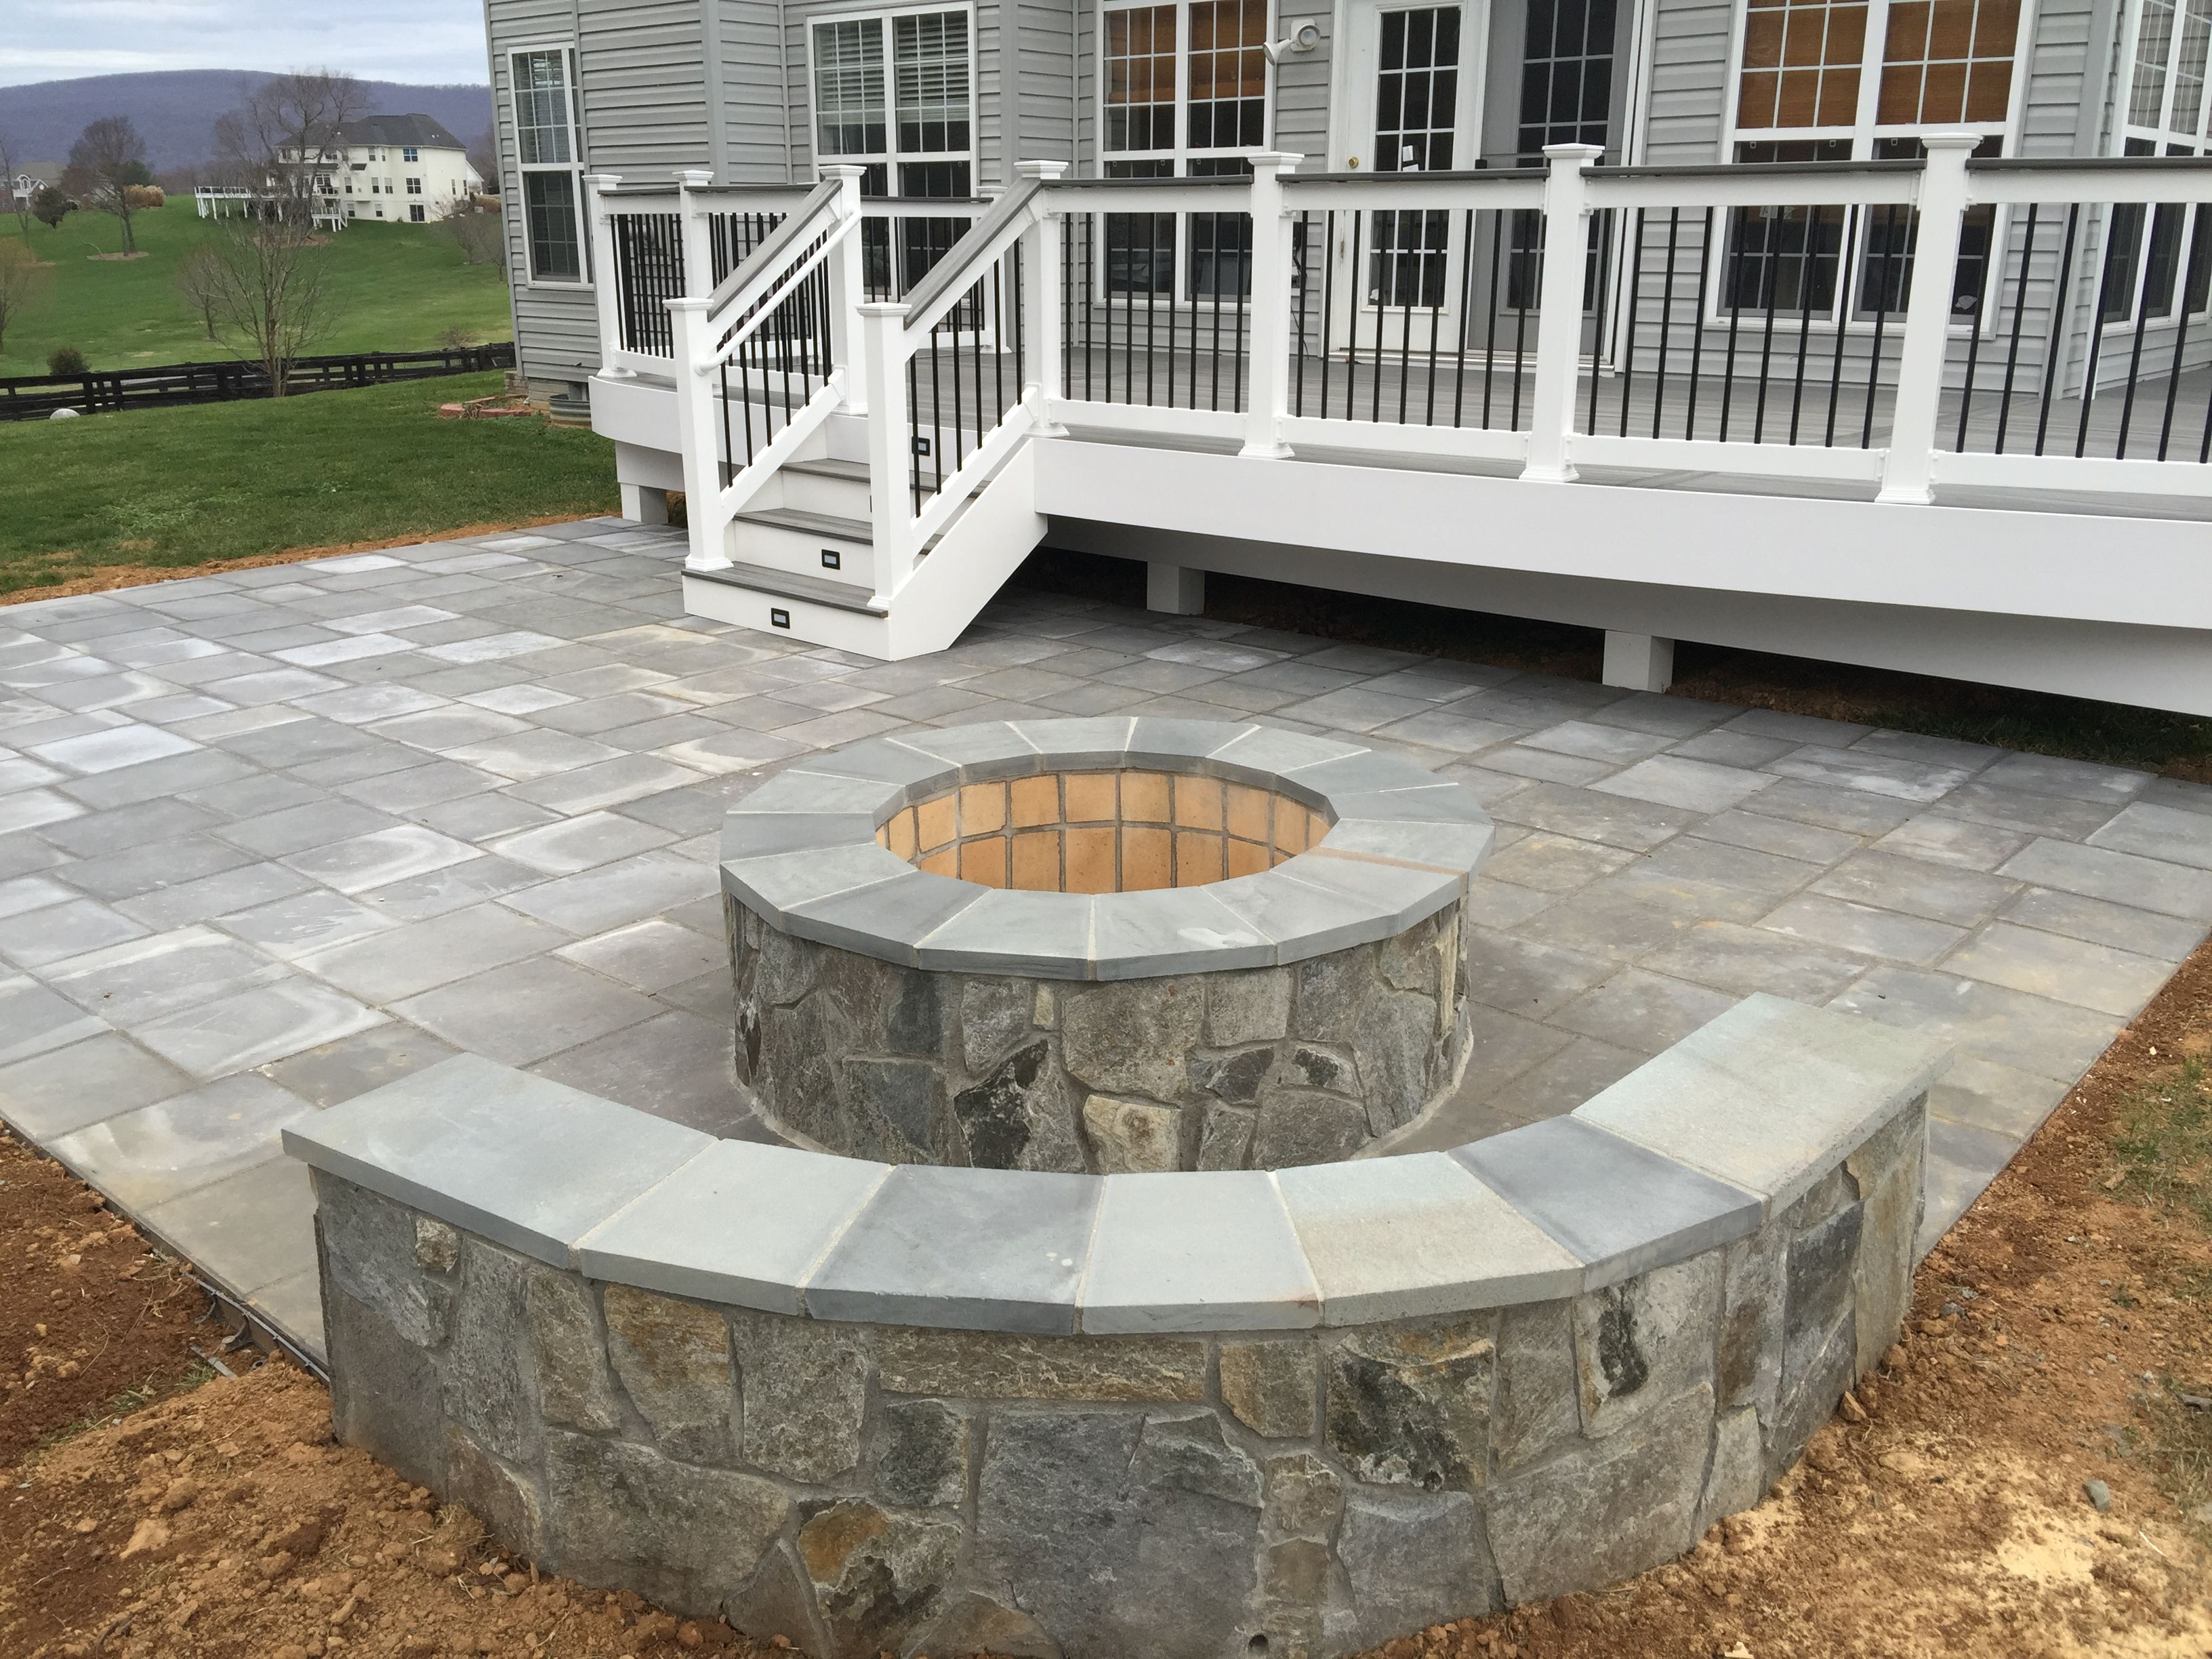 A Beautiful Paver Patio With Stone Seating Walls And Fire Pit Behind It Is Trex Deck Handrails White Vinyl Rails Black Aluminum Baers